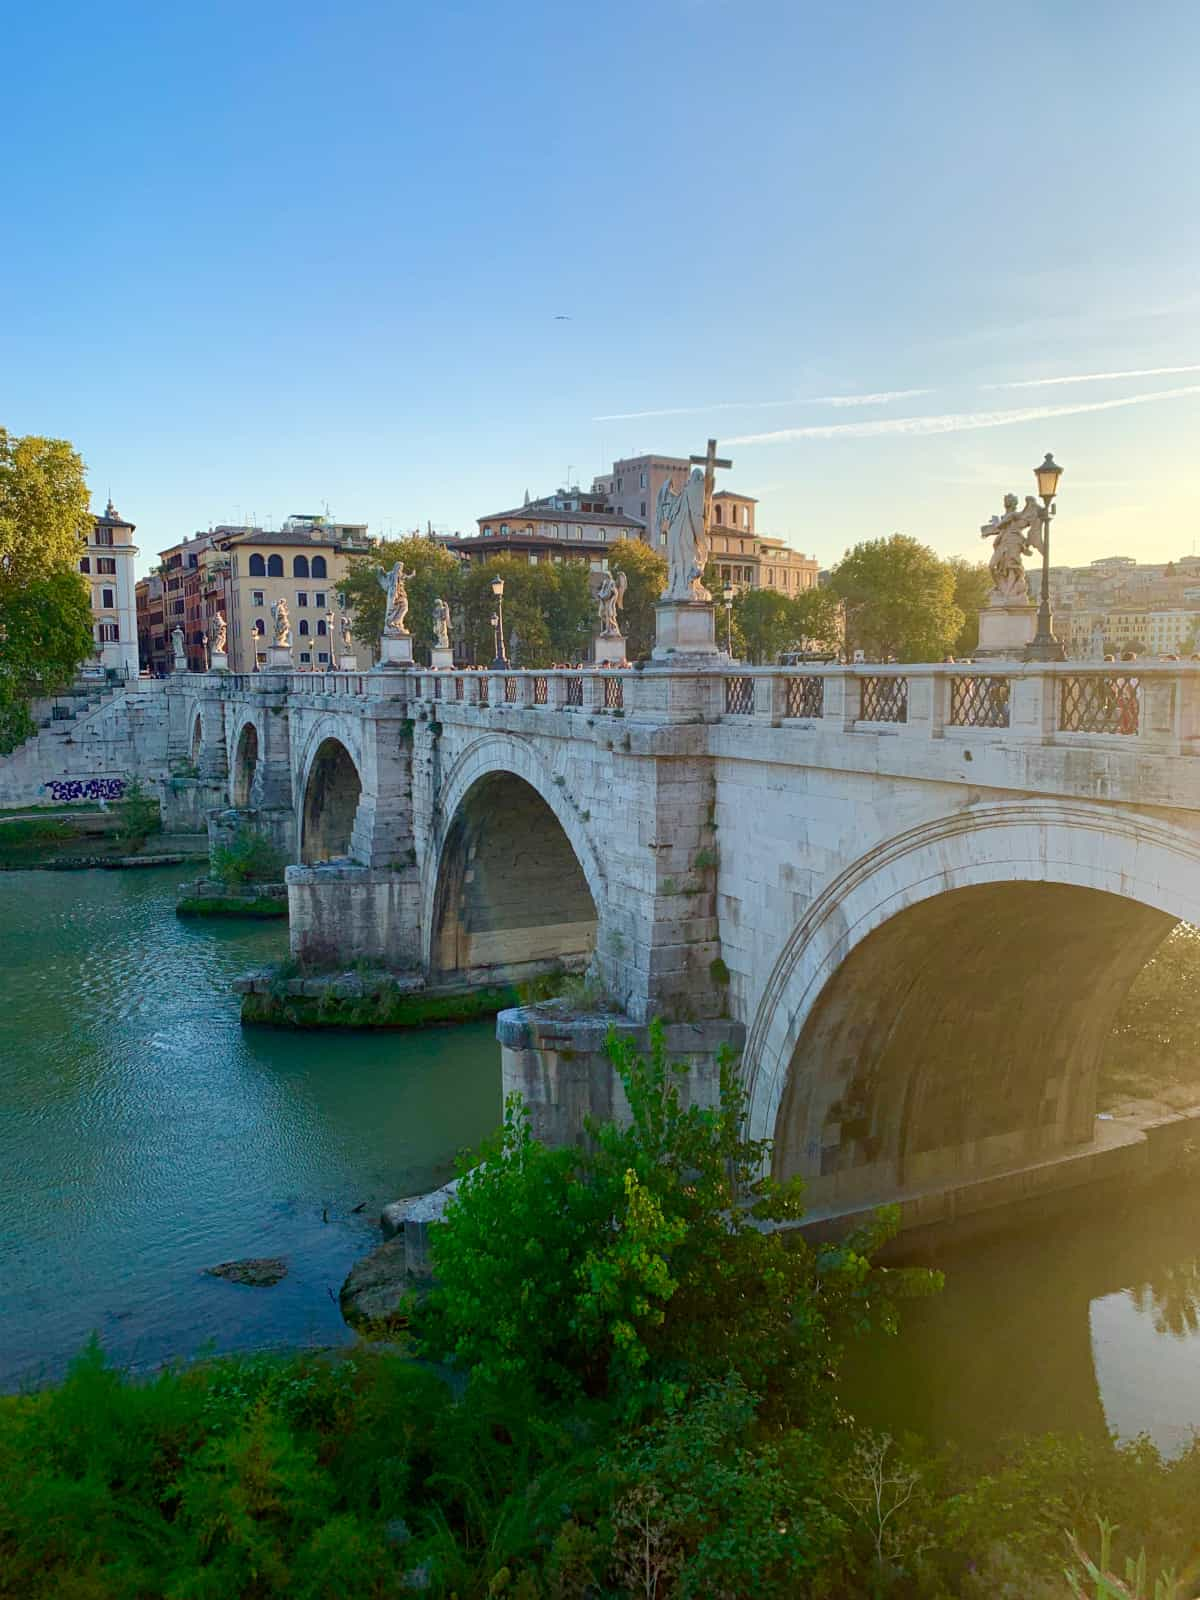 14 of the Best Photo Spots in Rome...and Best Times of Day | Rome, Italy, is one of my favorite cities, and there are endless ways to capture its beauty! From the best angles and times to capture well-known sites like St. Peter's and the Trevi Fountain, to spots people forget like the Largo di Argentina, here's a guide to my favorite spots, angles, and times of day. #rome #photography #travelguides #italy